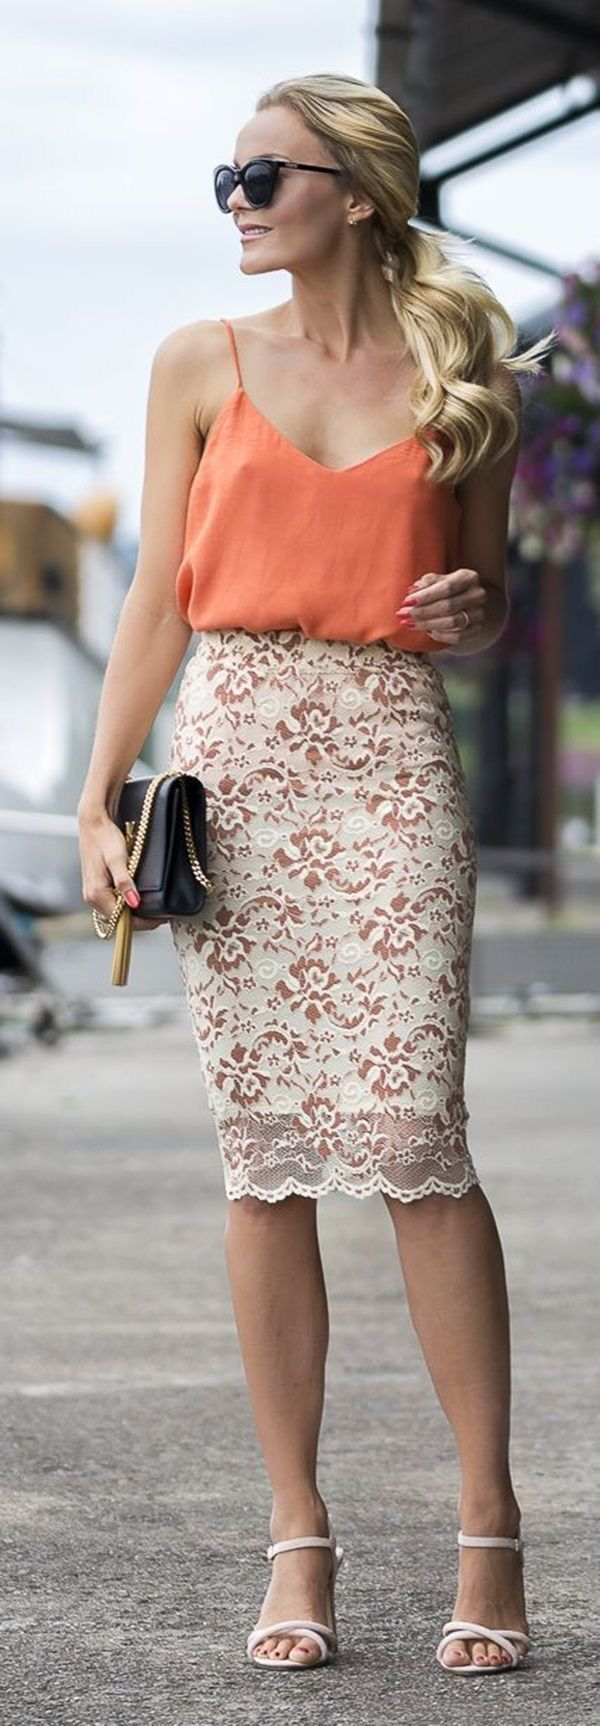 Peach top with beautiful cream lace skirt